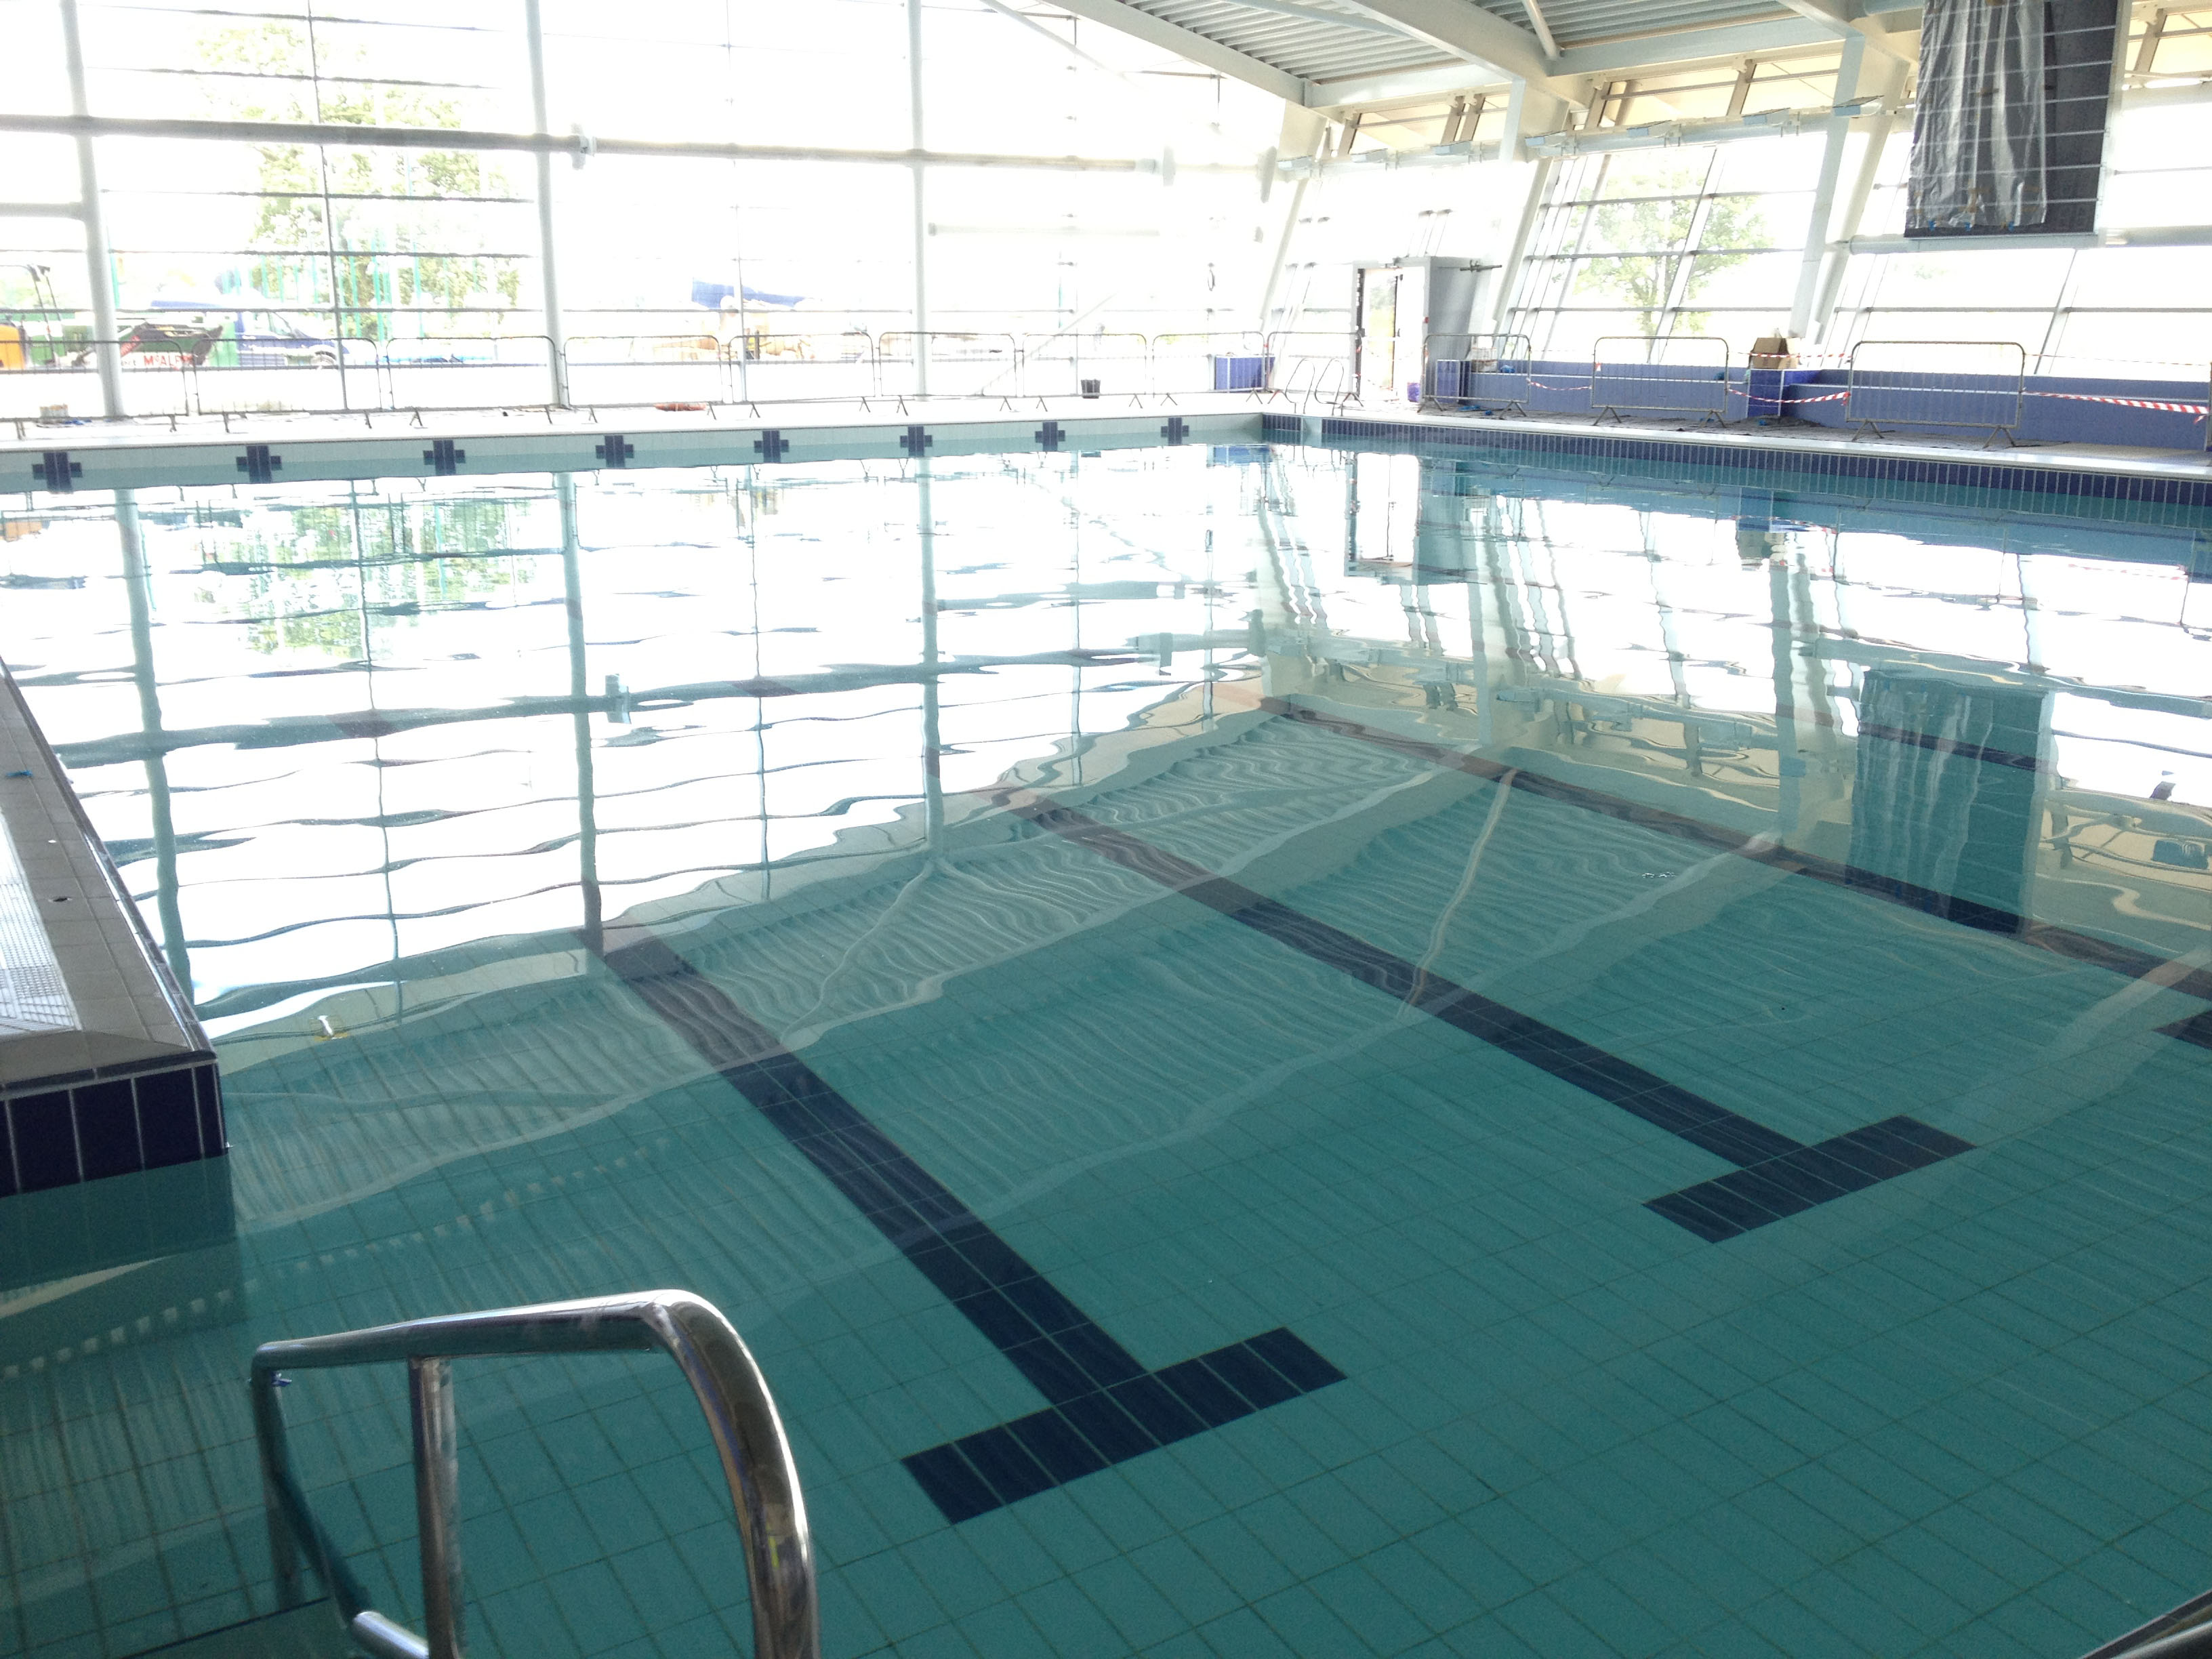 New Pool To Revolutionise Sport In York Says Liberal Democrat Councillor Steve Galloway